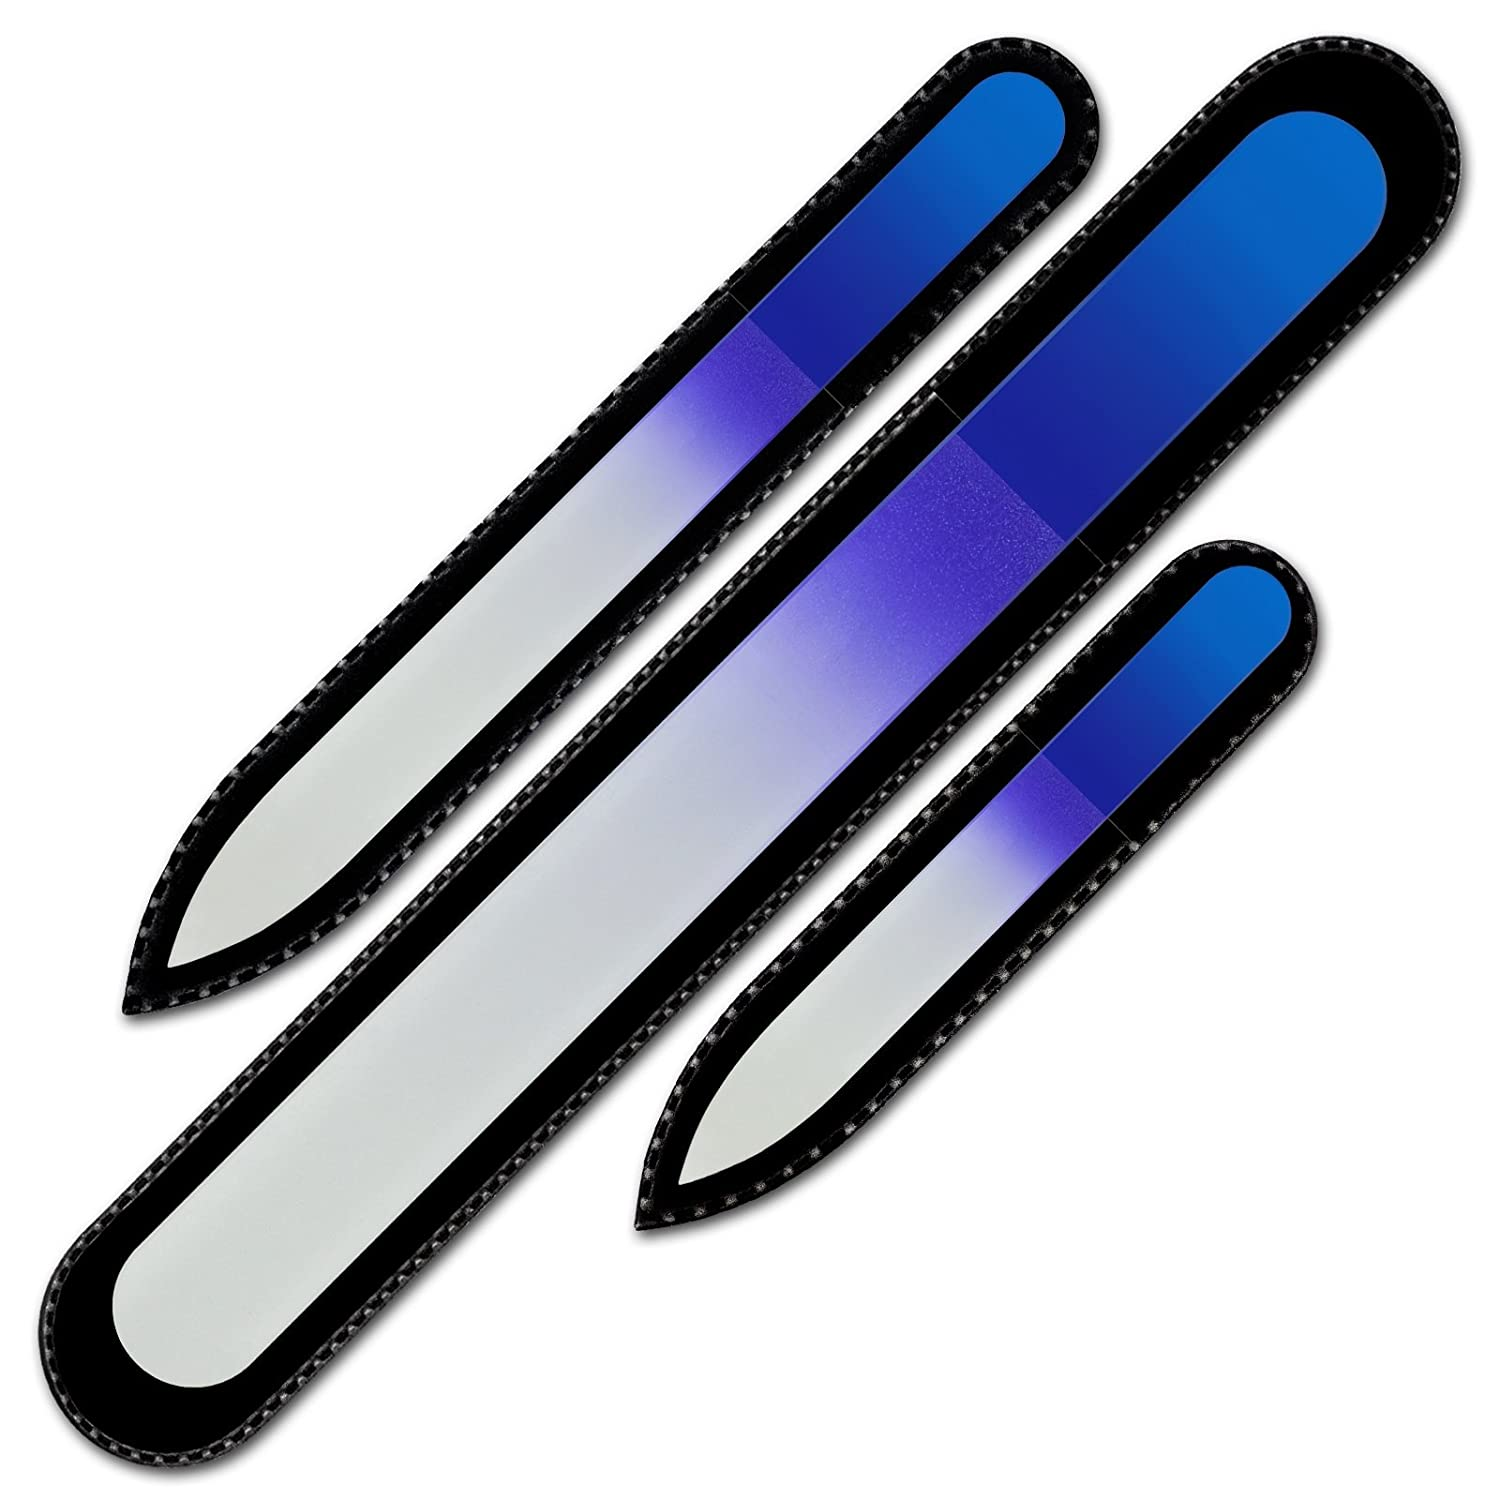 Mont Bleu Premium Set of 3 Crystal Nail Files in Velvet Pouch Rainbow Colors Genuine Czech Tempered